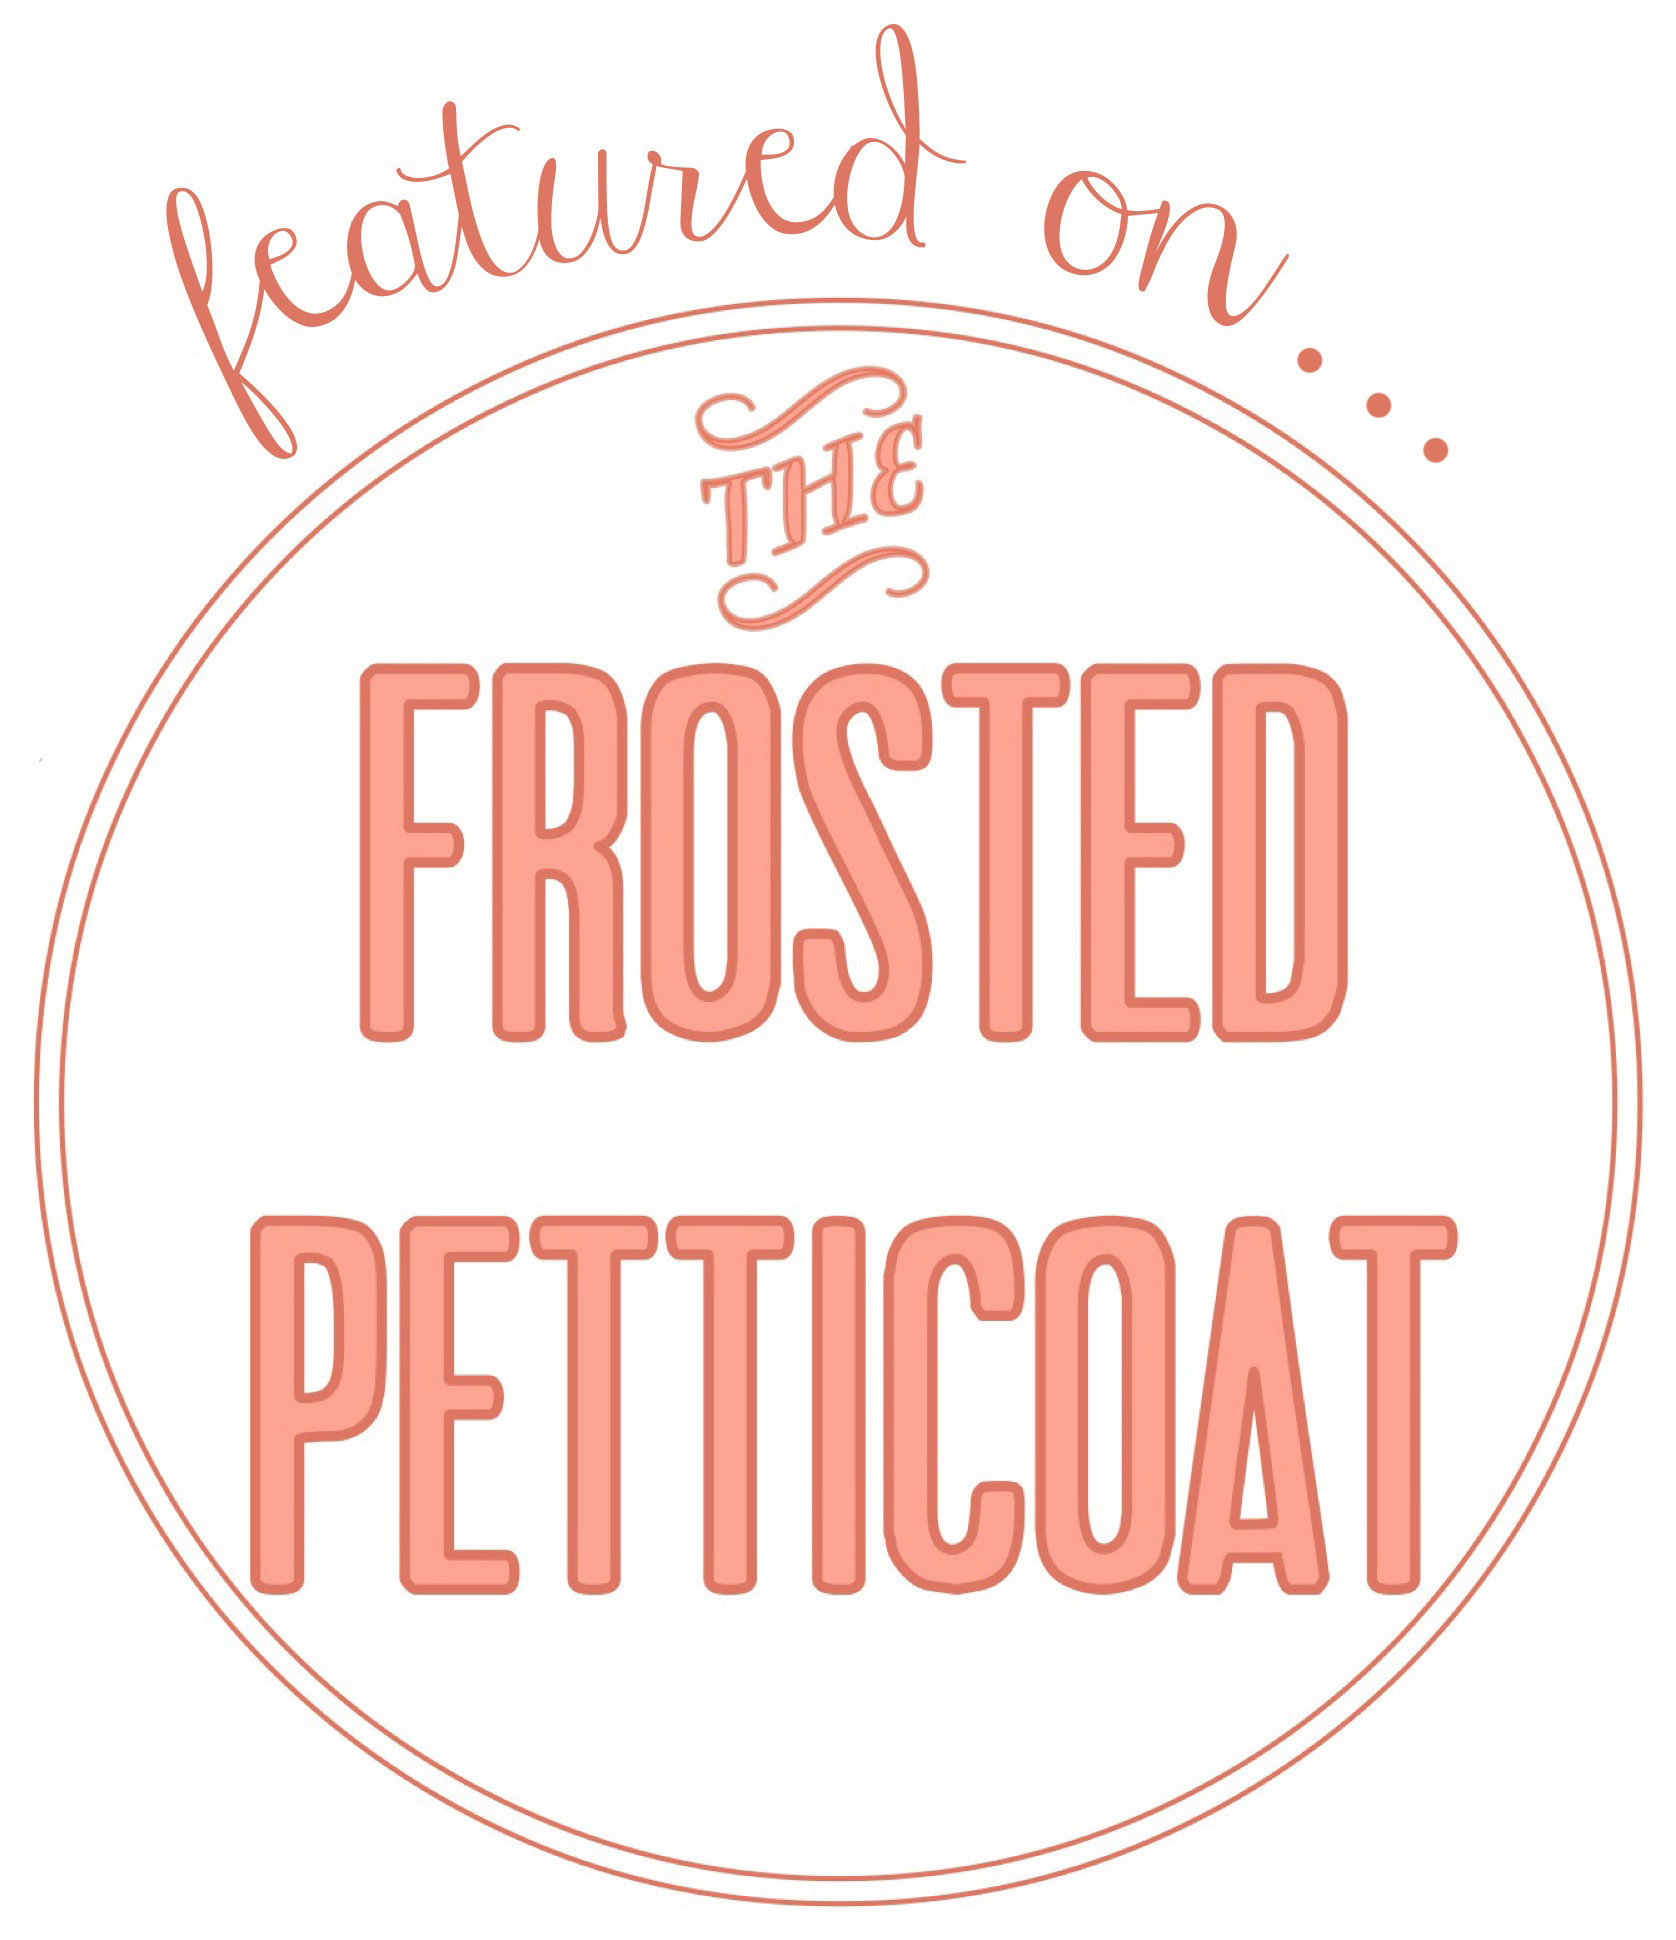 Frosted Petticoat Featured Logo.jpg